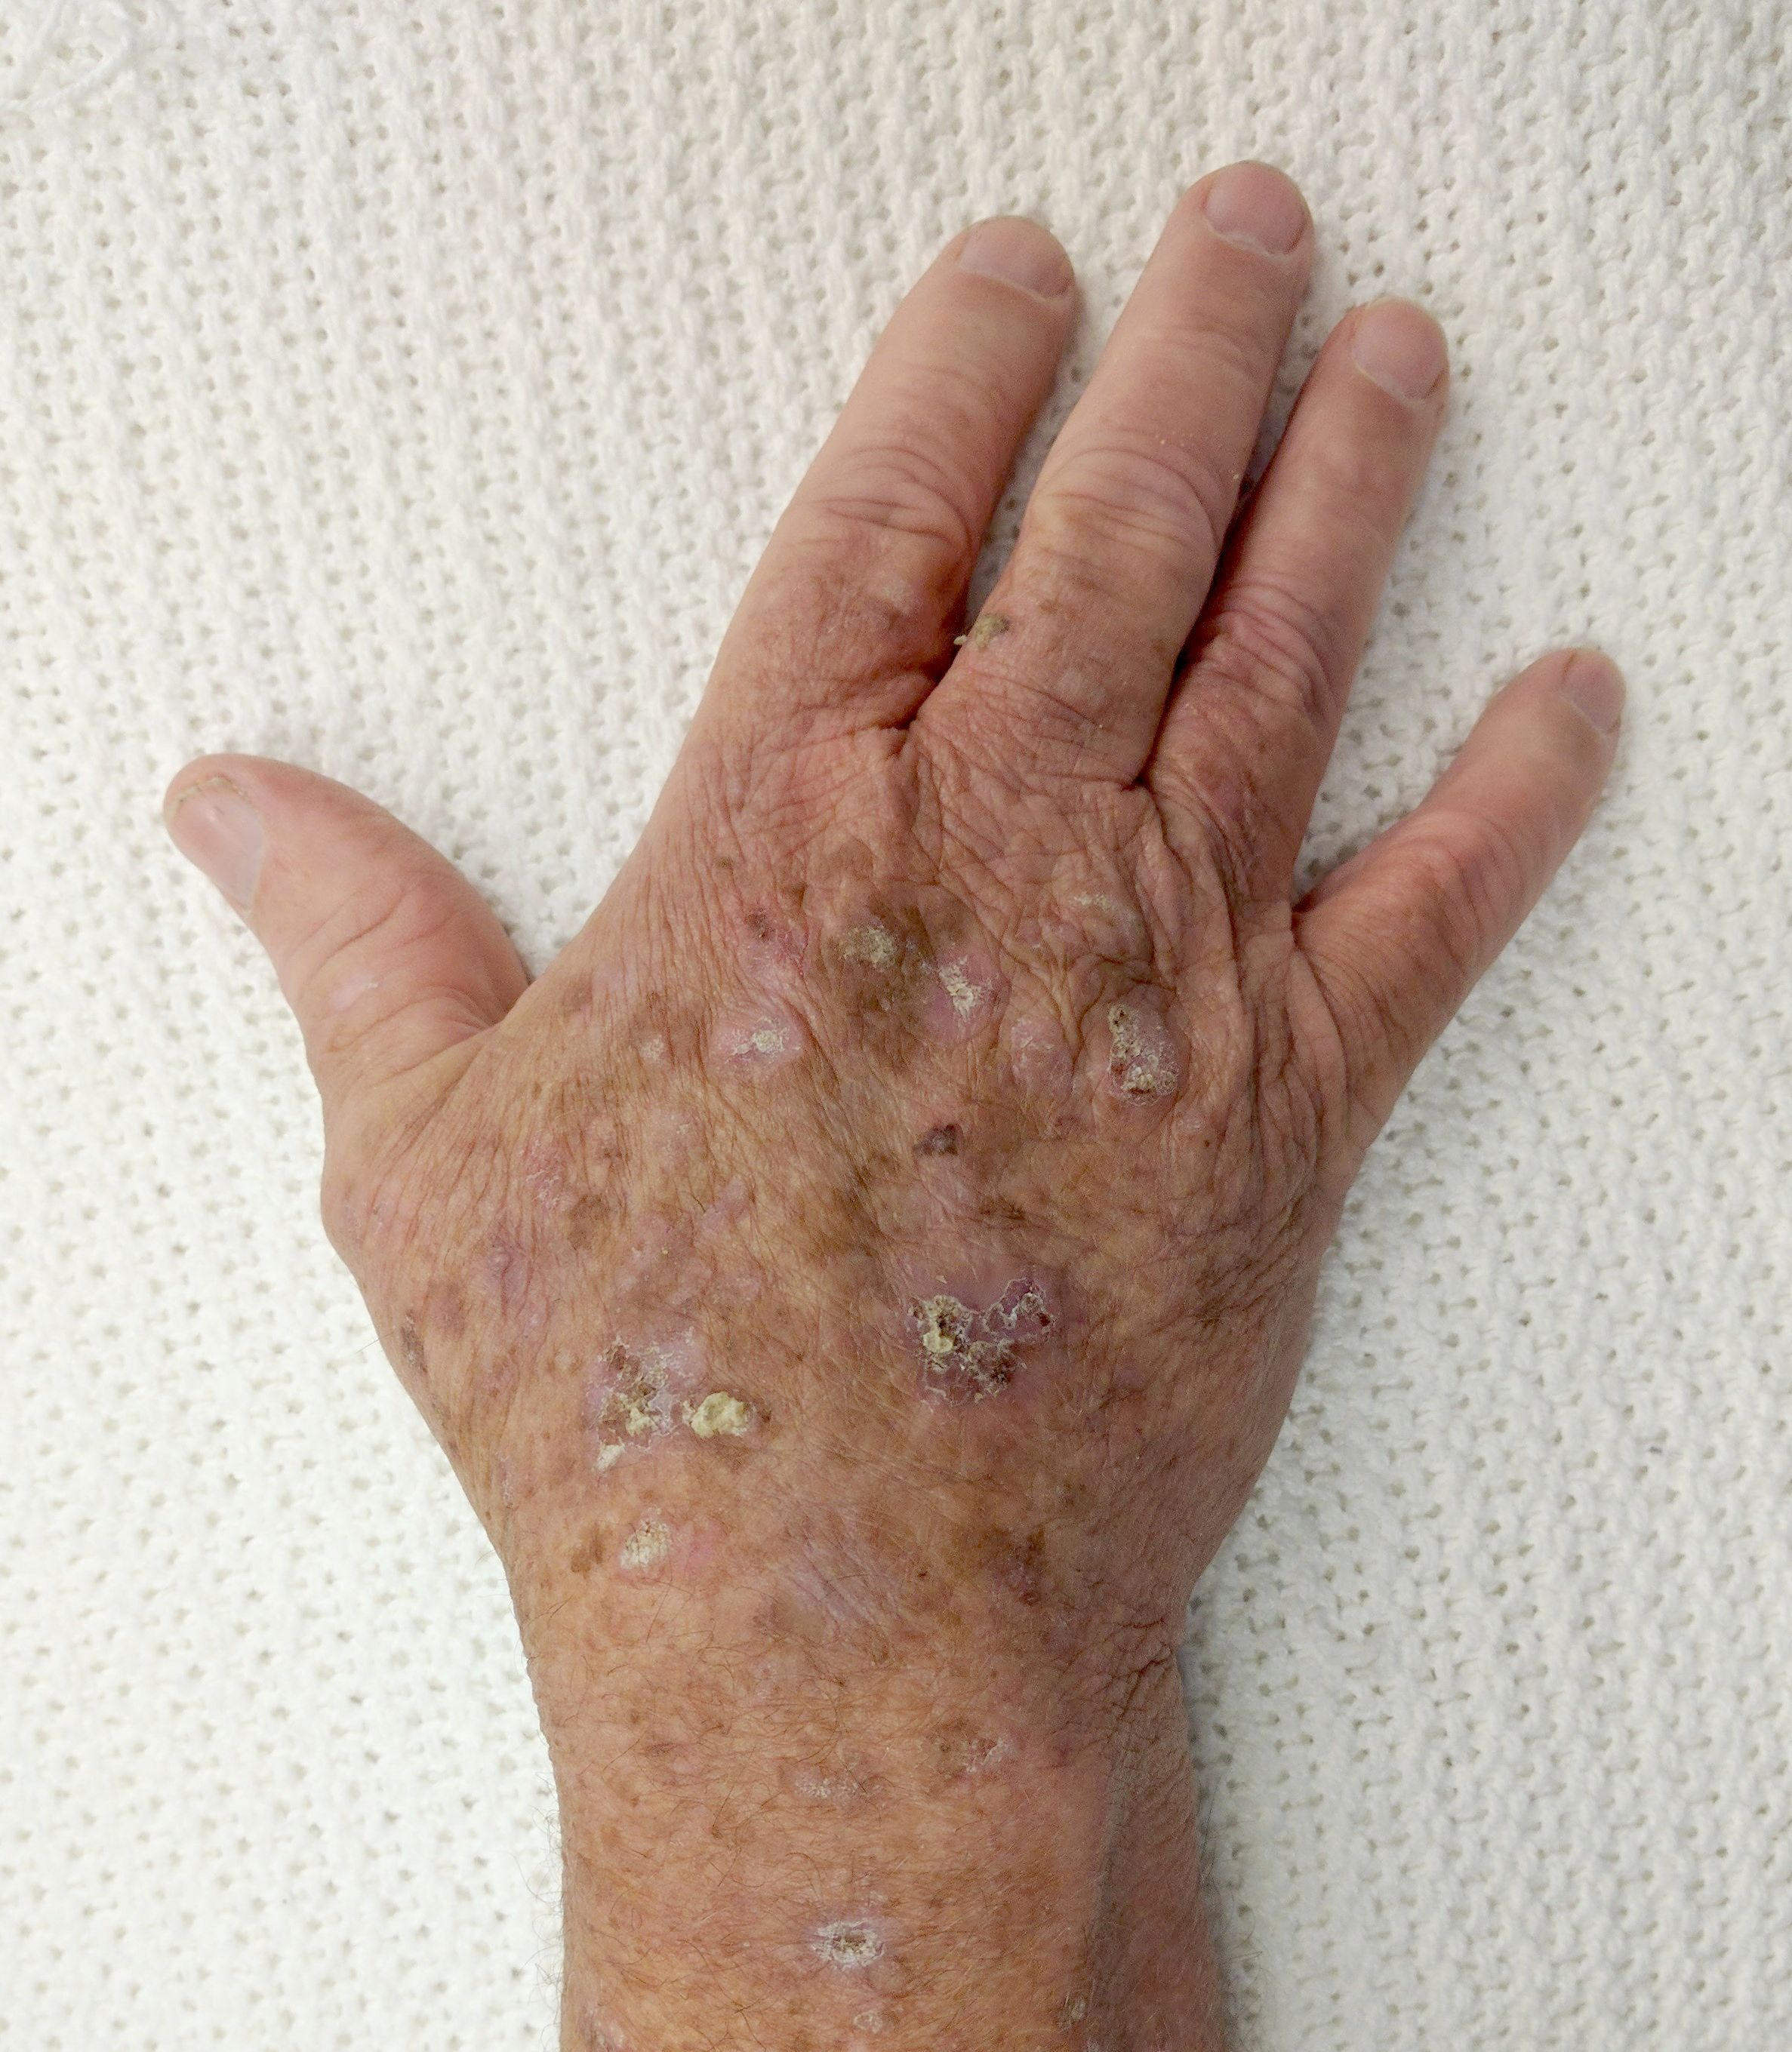 warts on hands from sun)